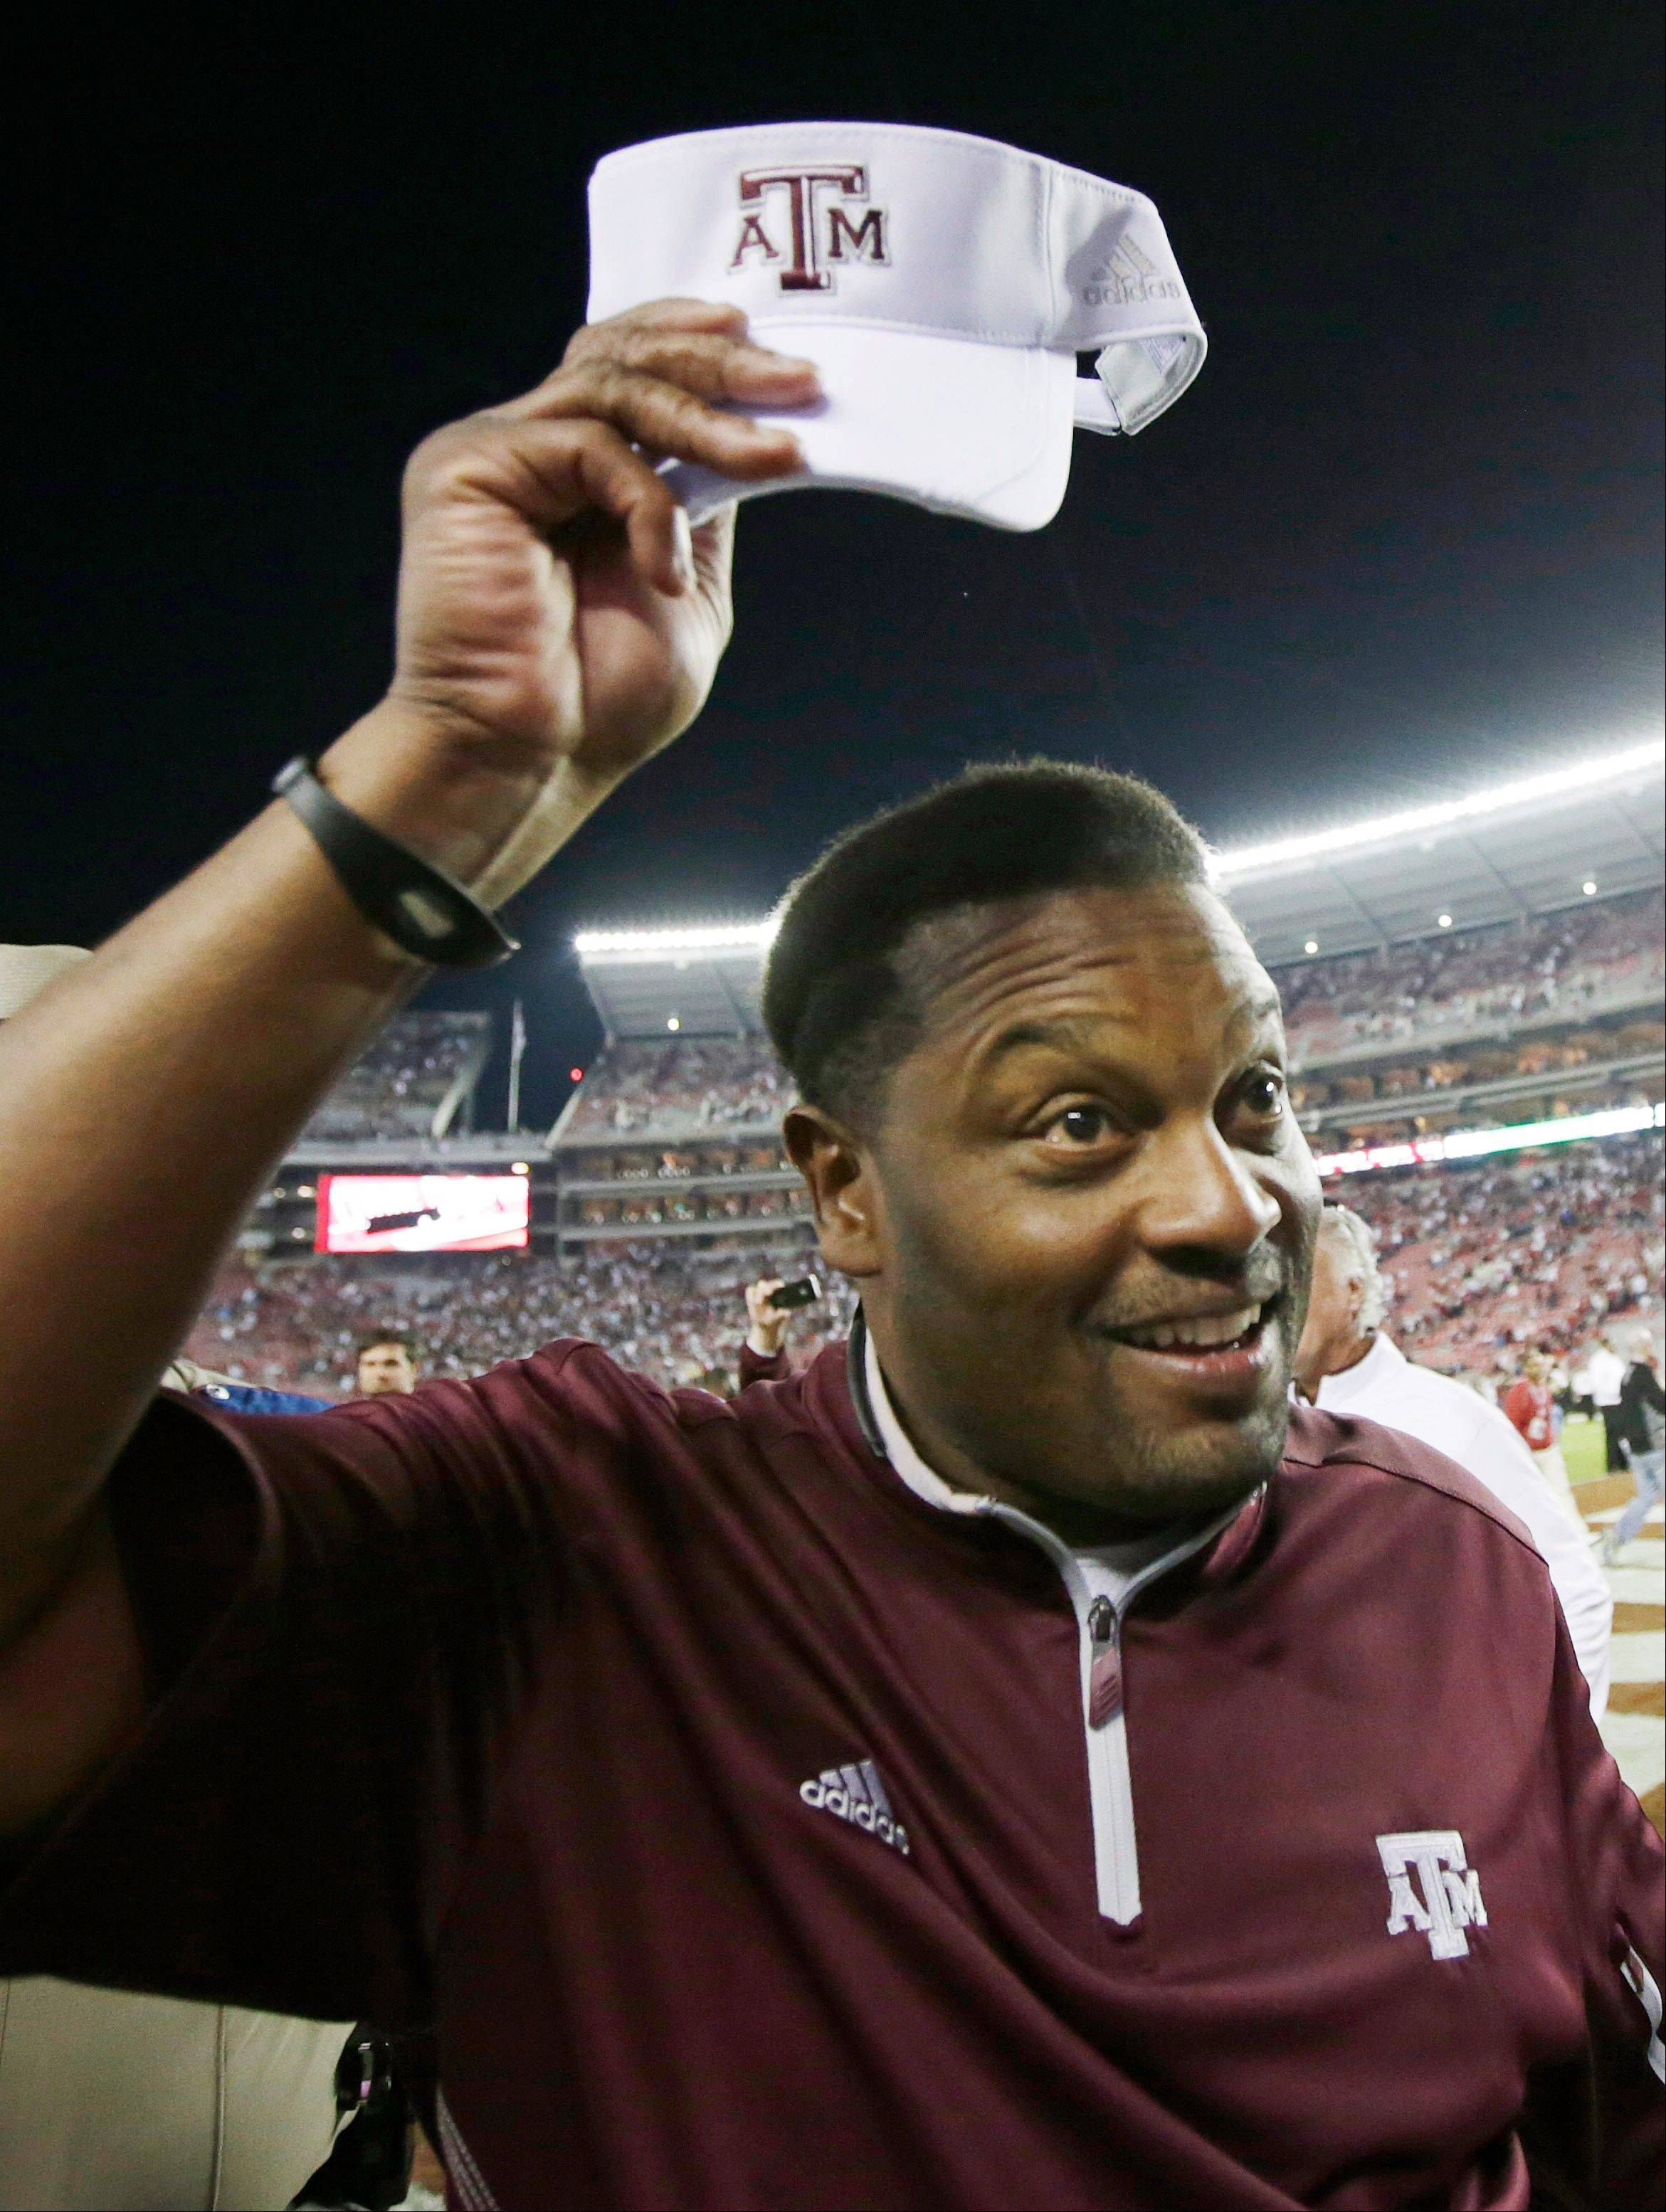 Texas A&M coach Kevin Sumlin tips his cap following a 29-24 win over top ranked Alabama in Tuscaloosa on Saturday.